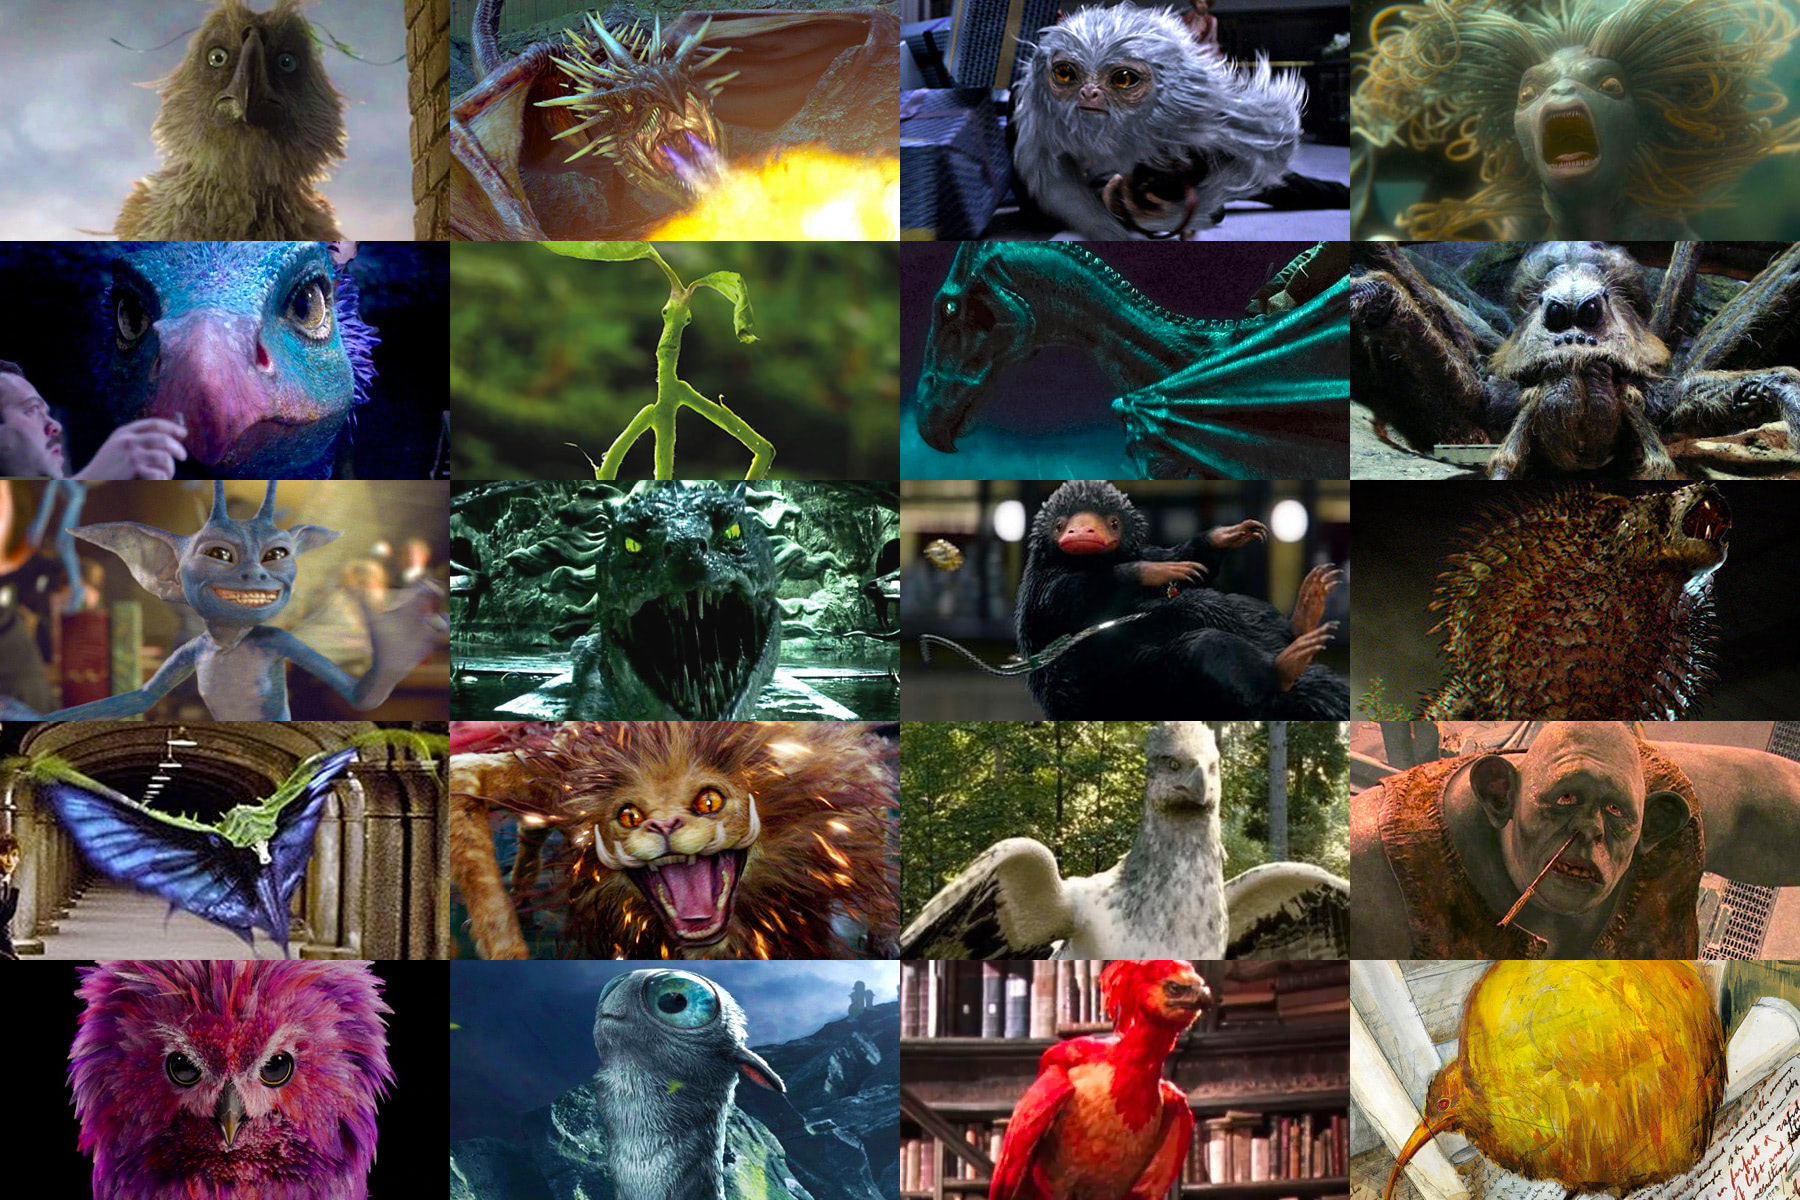 'Harry Potter' magical creatures